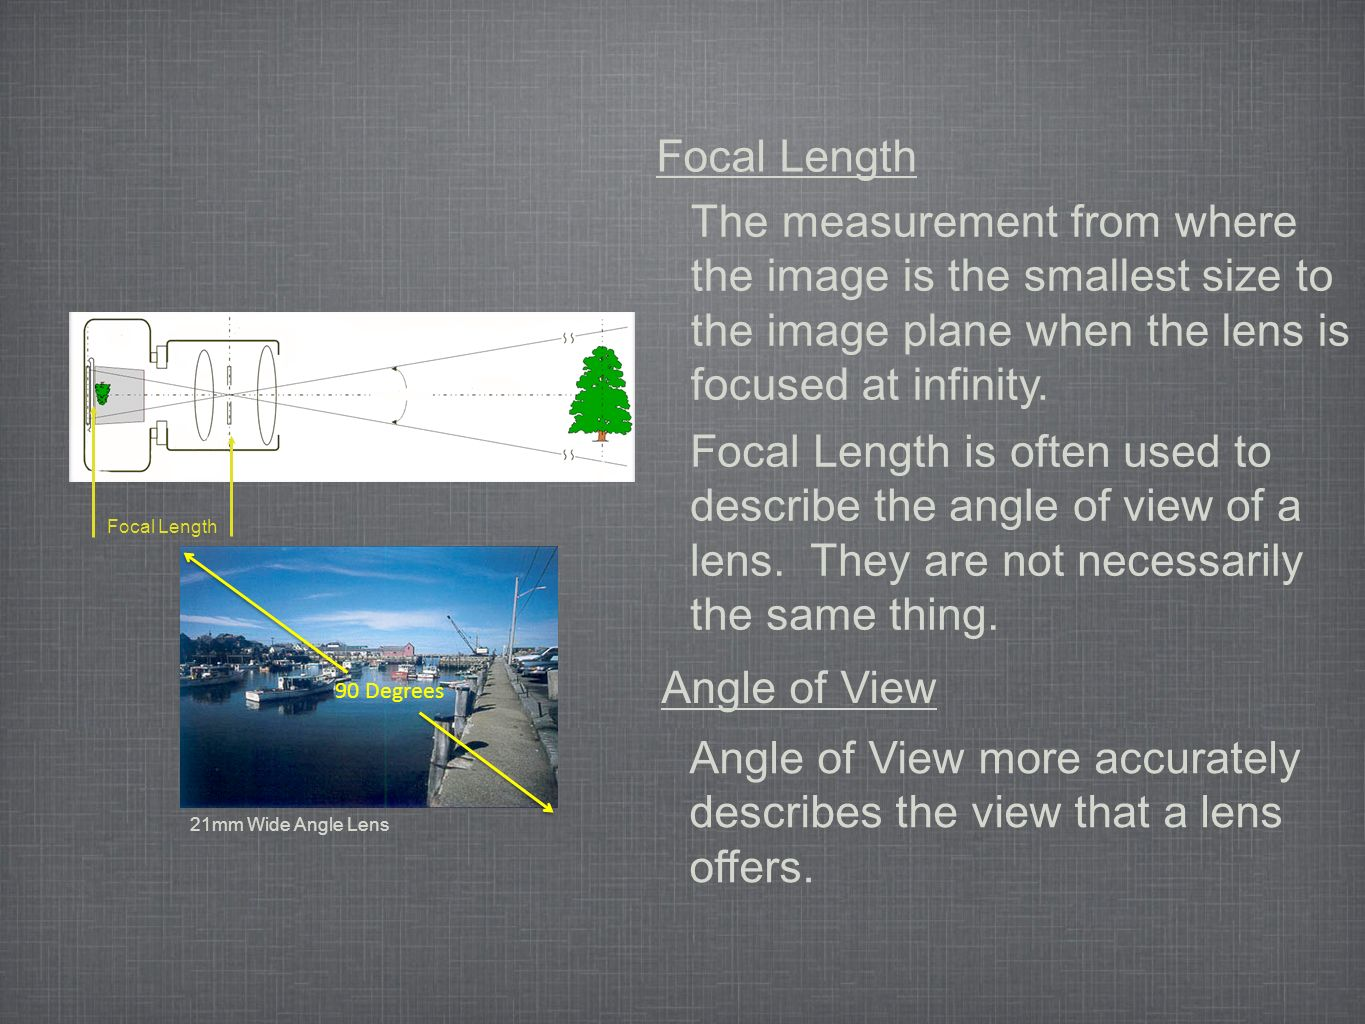 Focal Length The measurement from where the image is the smallest size to the image plane when the lens is focused at infinity.